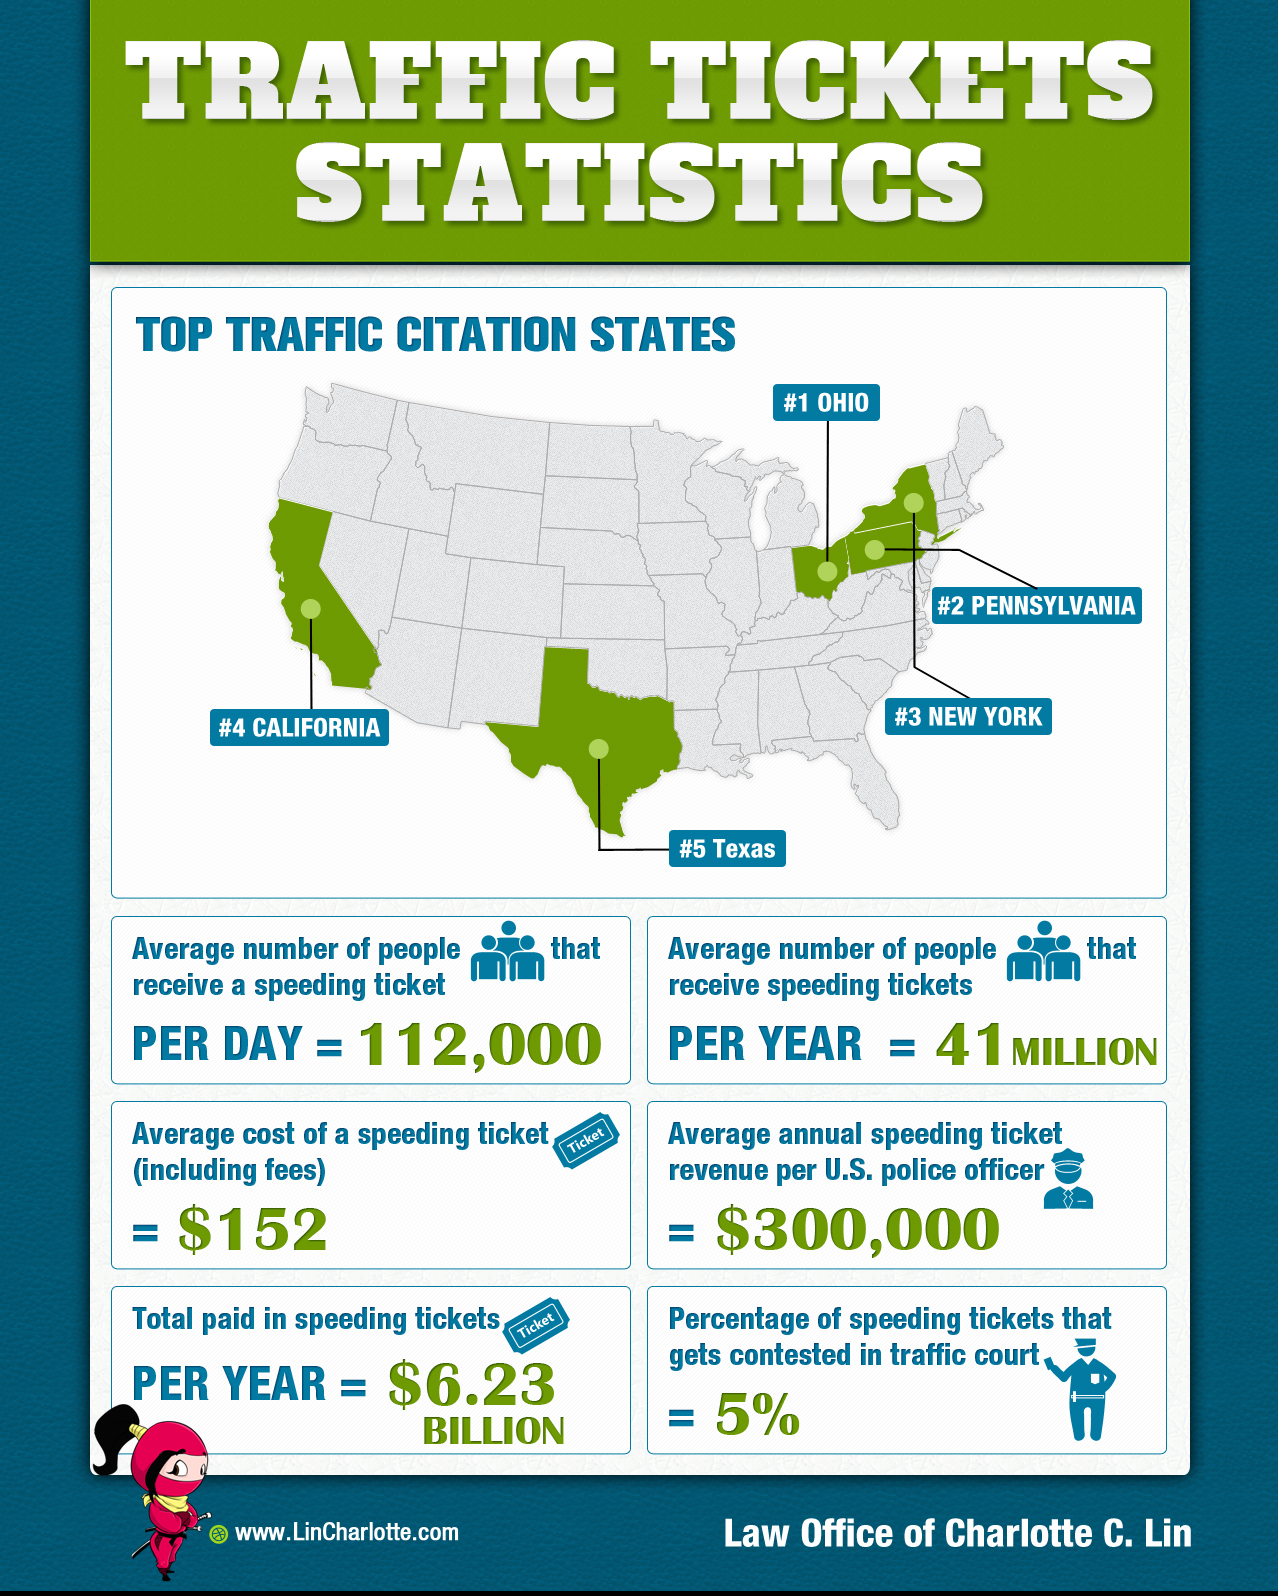 Traffic_Tickets_Statistics (2)